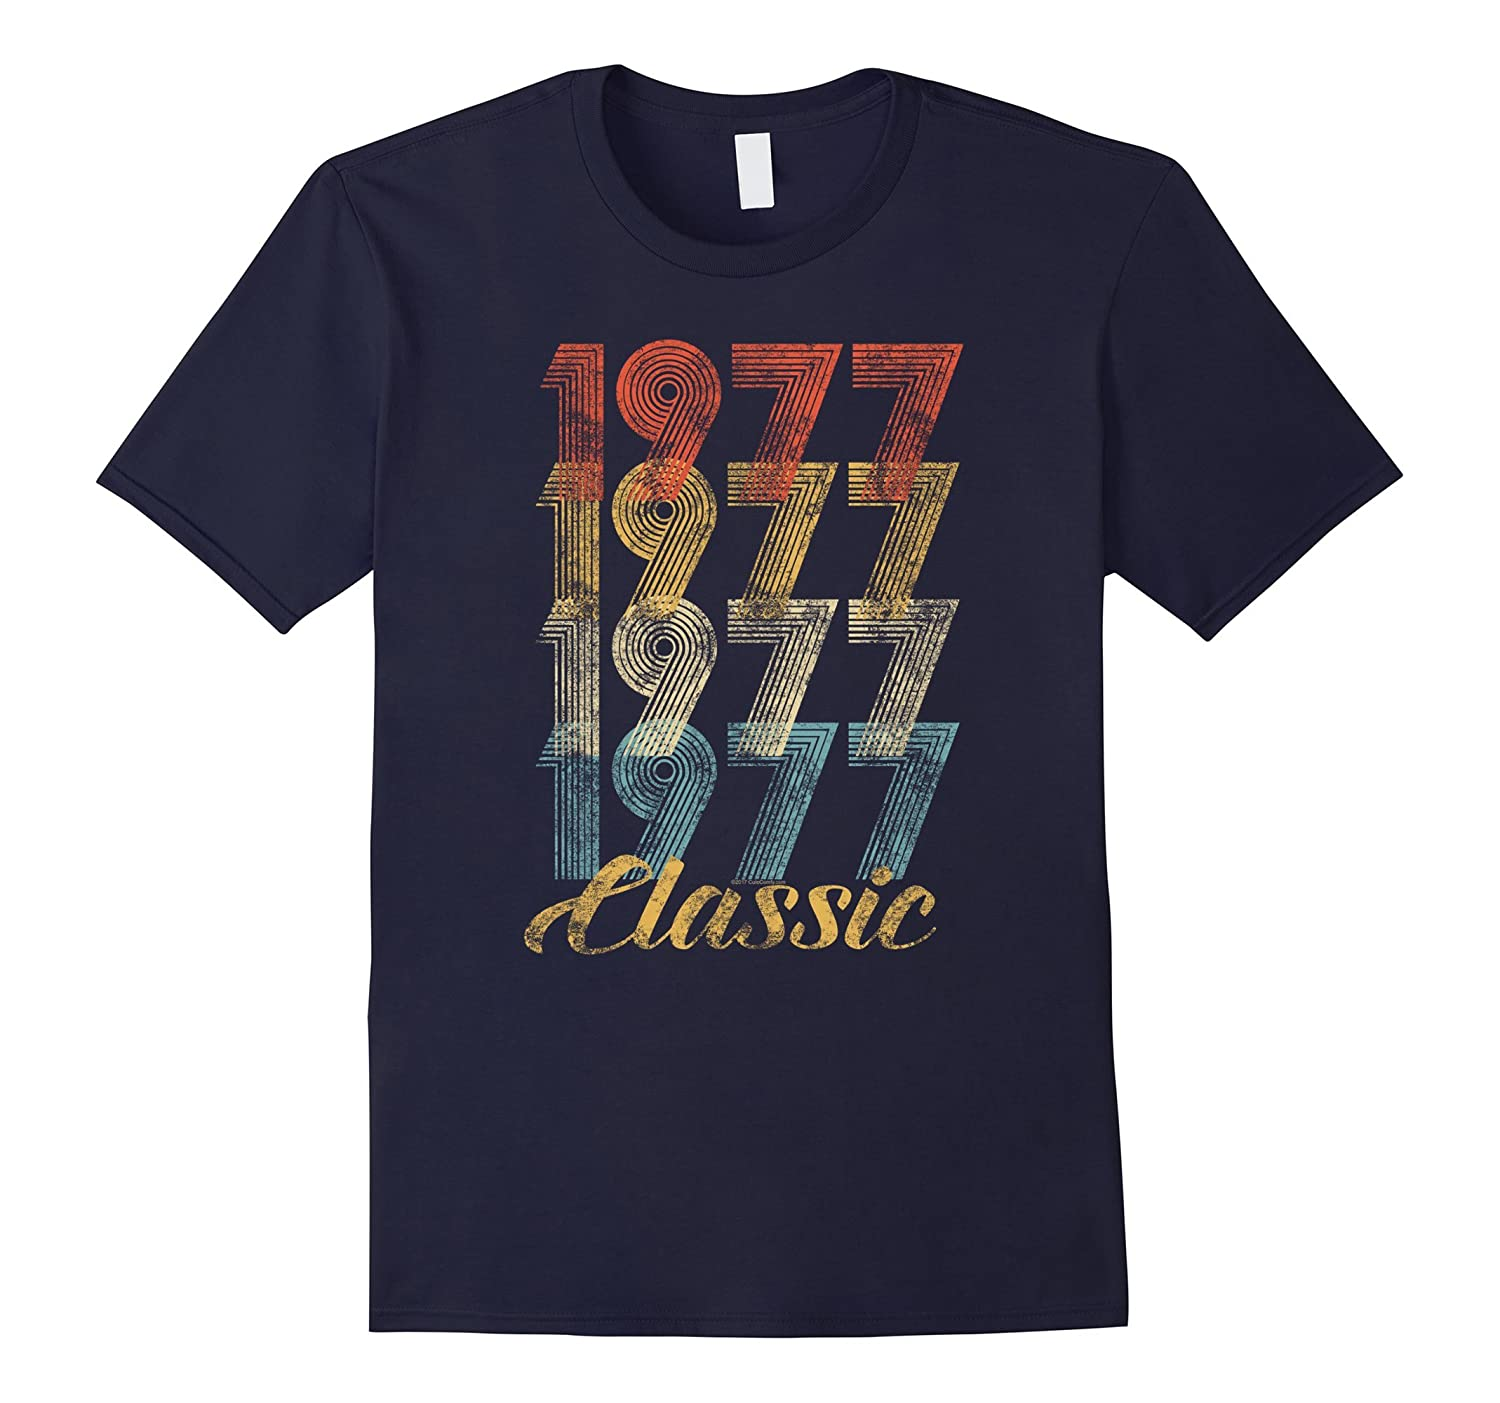 40th Birthday Gift Vintage 1977 T-Shirt for Men & Women-Art